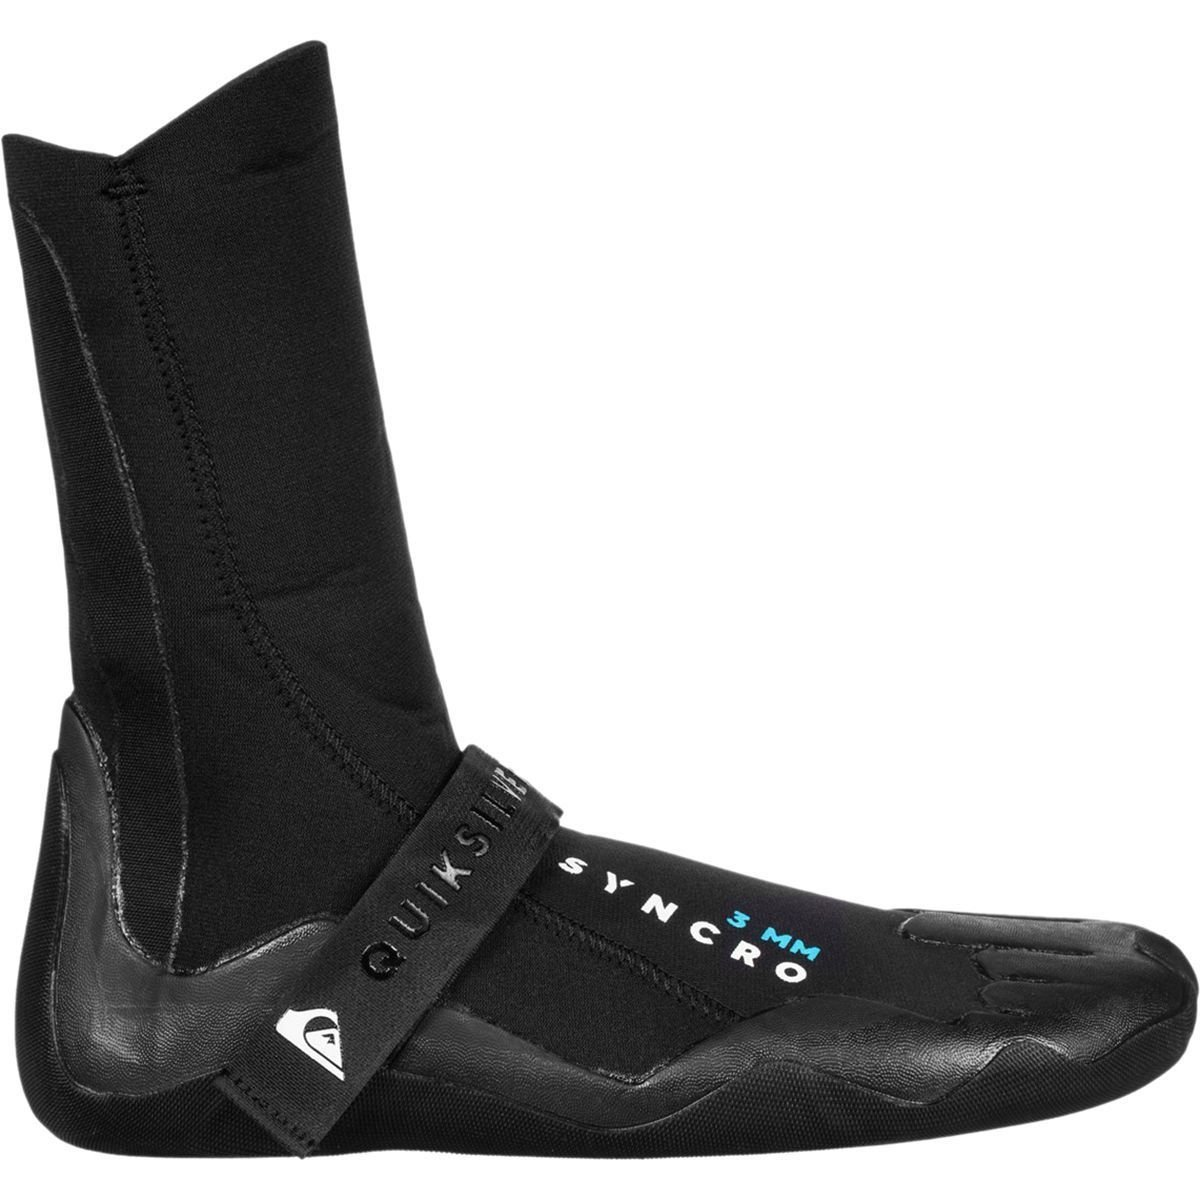 Quiksilver 3mm Syncro Round Toe Men's Watersports Boots - Black / 8 by Quiksilver